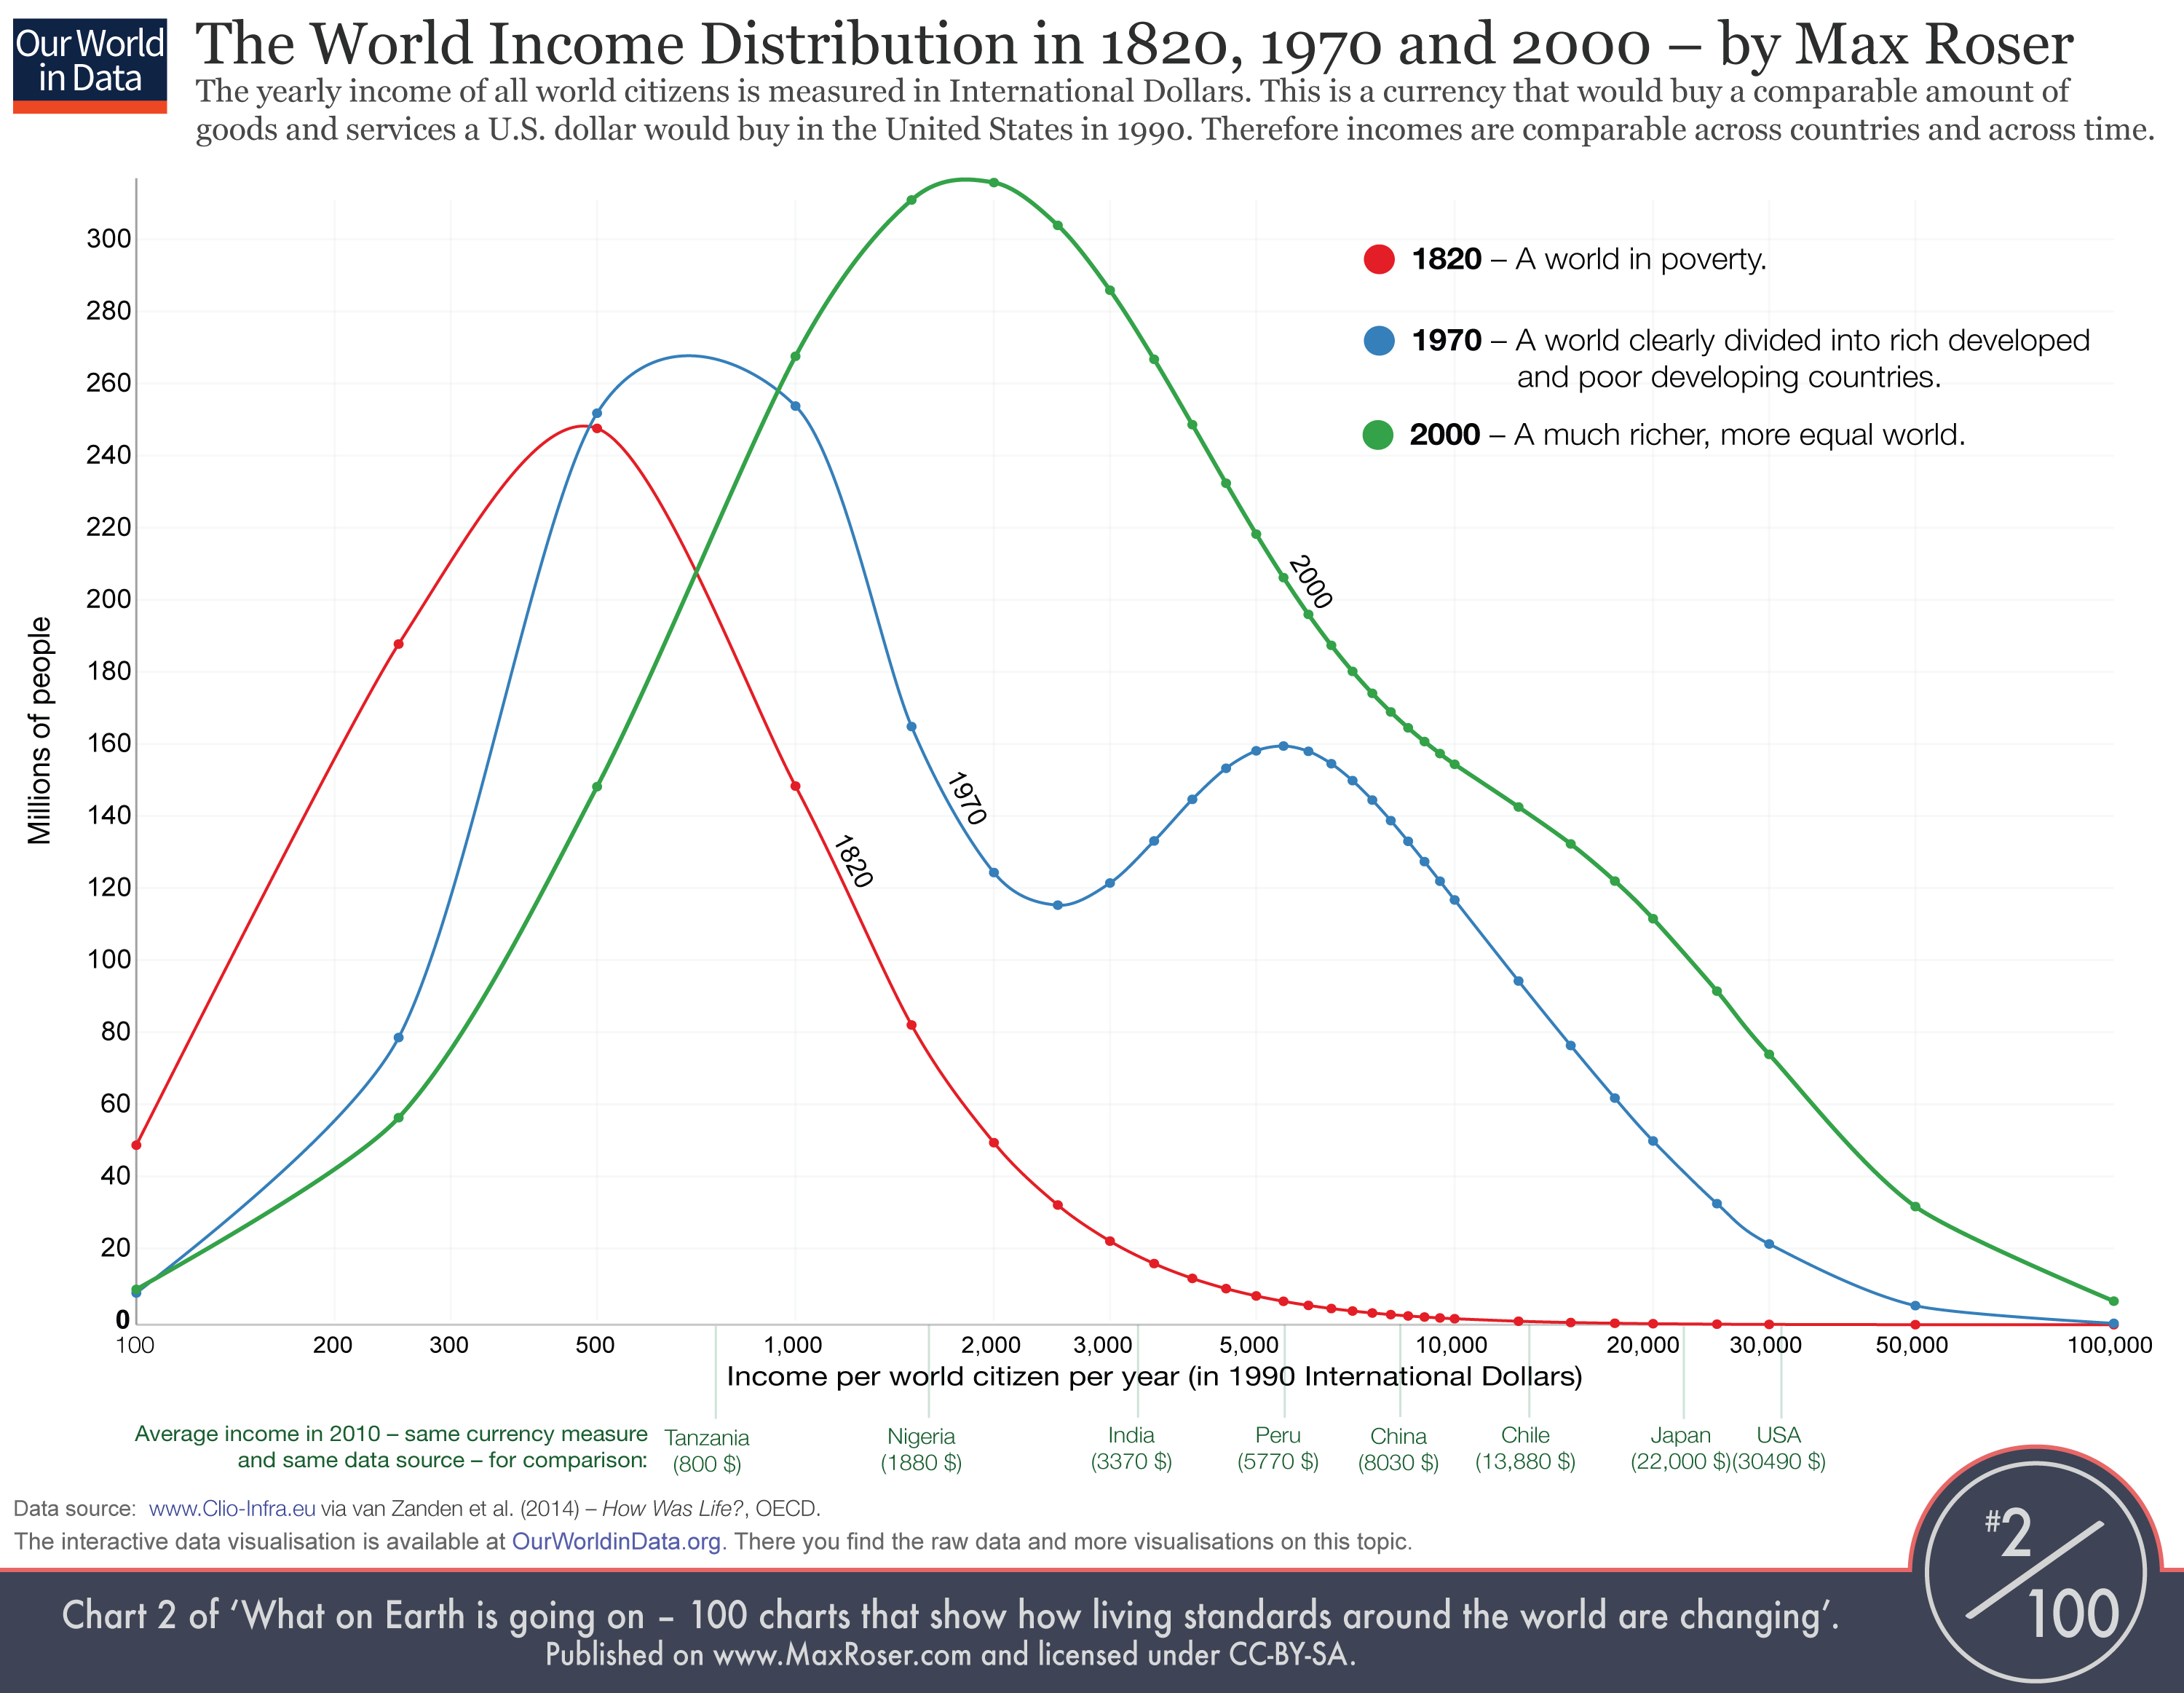 The World Income Distribution in 1820, 1970 and 2000